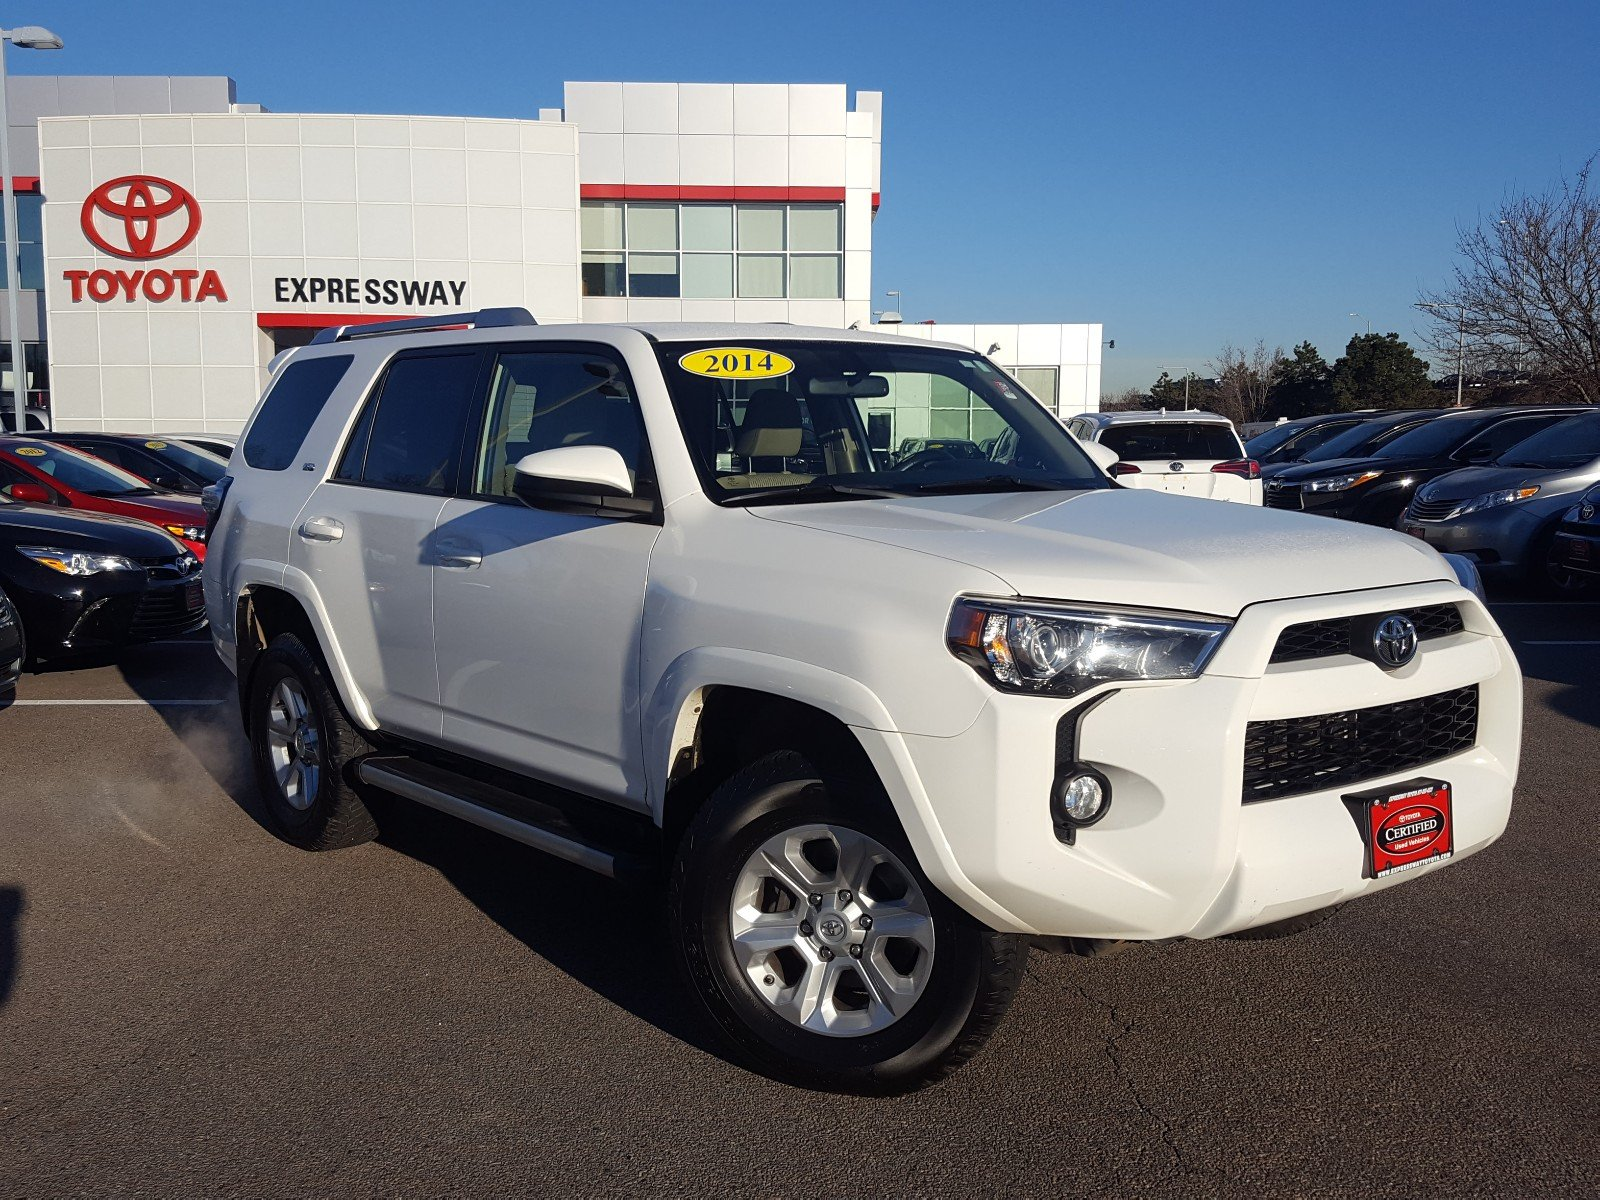 certified pre-owned 2014 toyota 4runner sr5 sport utility $31,950 in